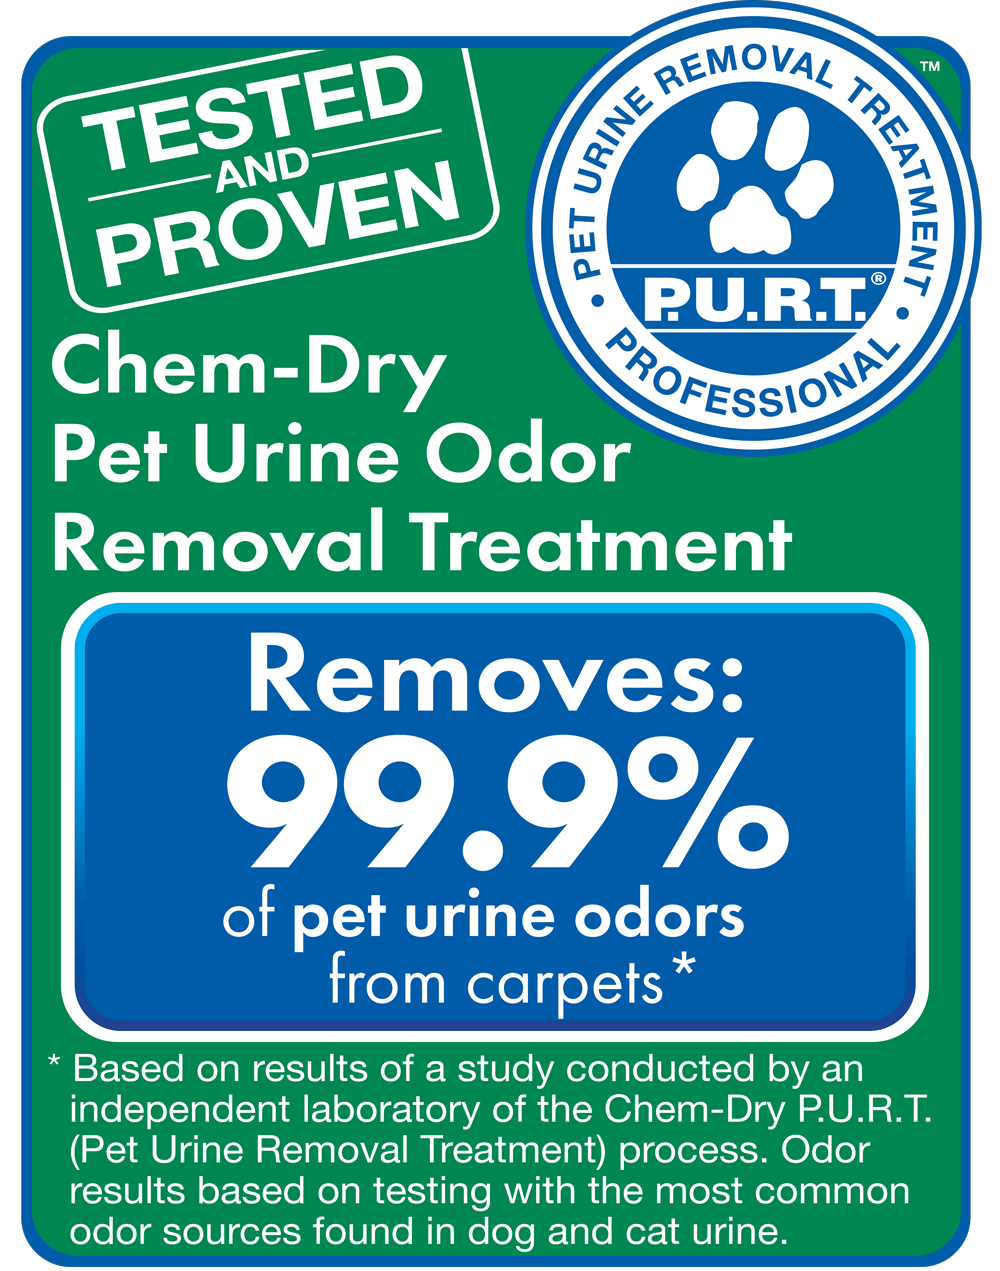 Chem-Dry removes bacteria and allergens